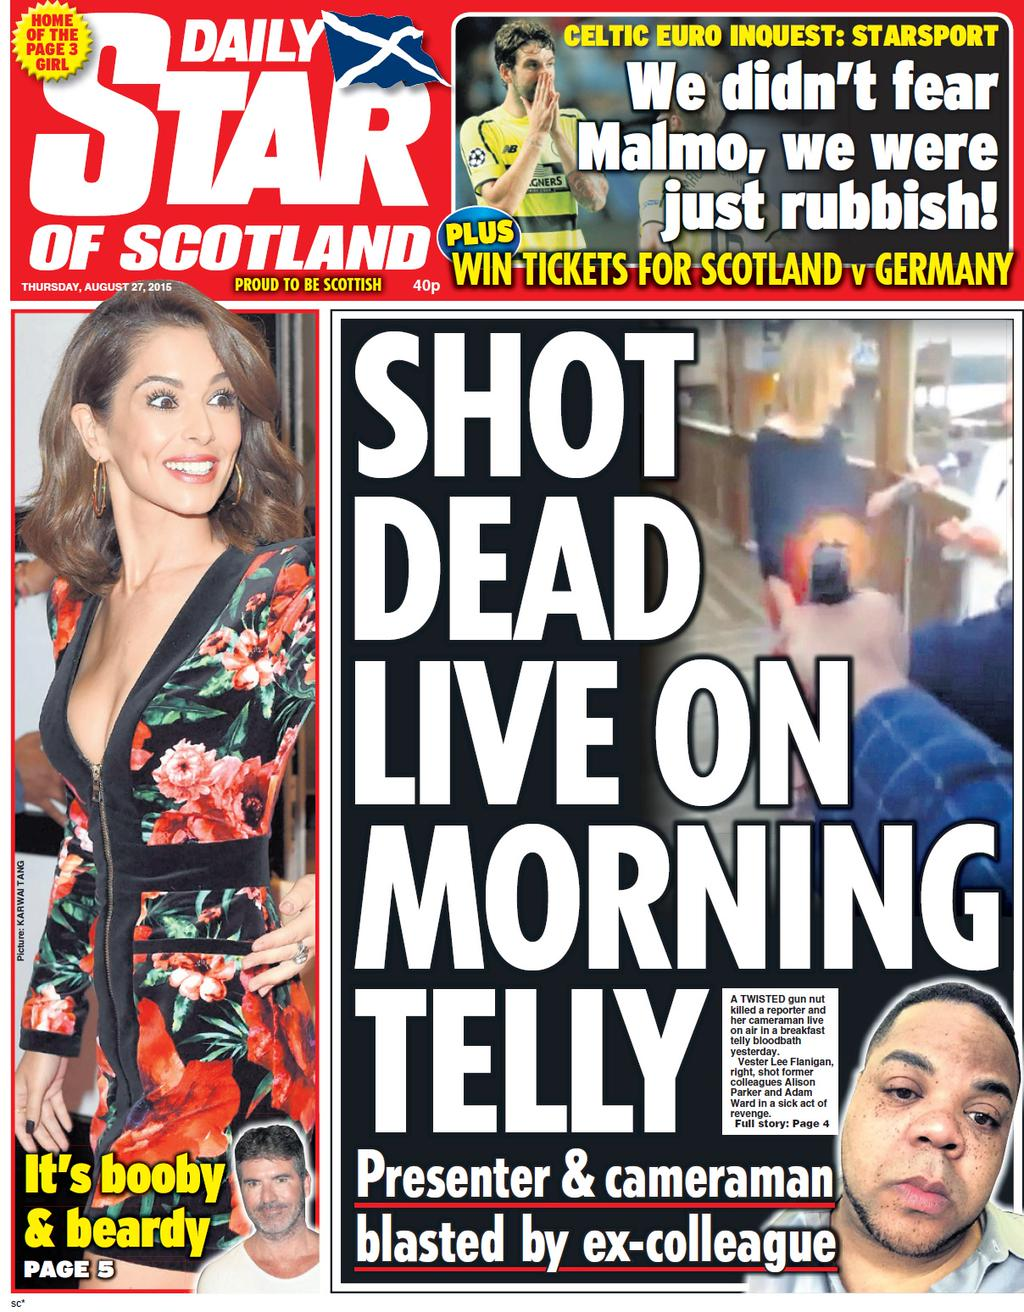 09 - Daily Star of Scotland -- Worse